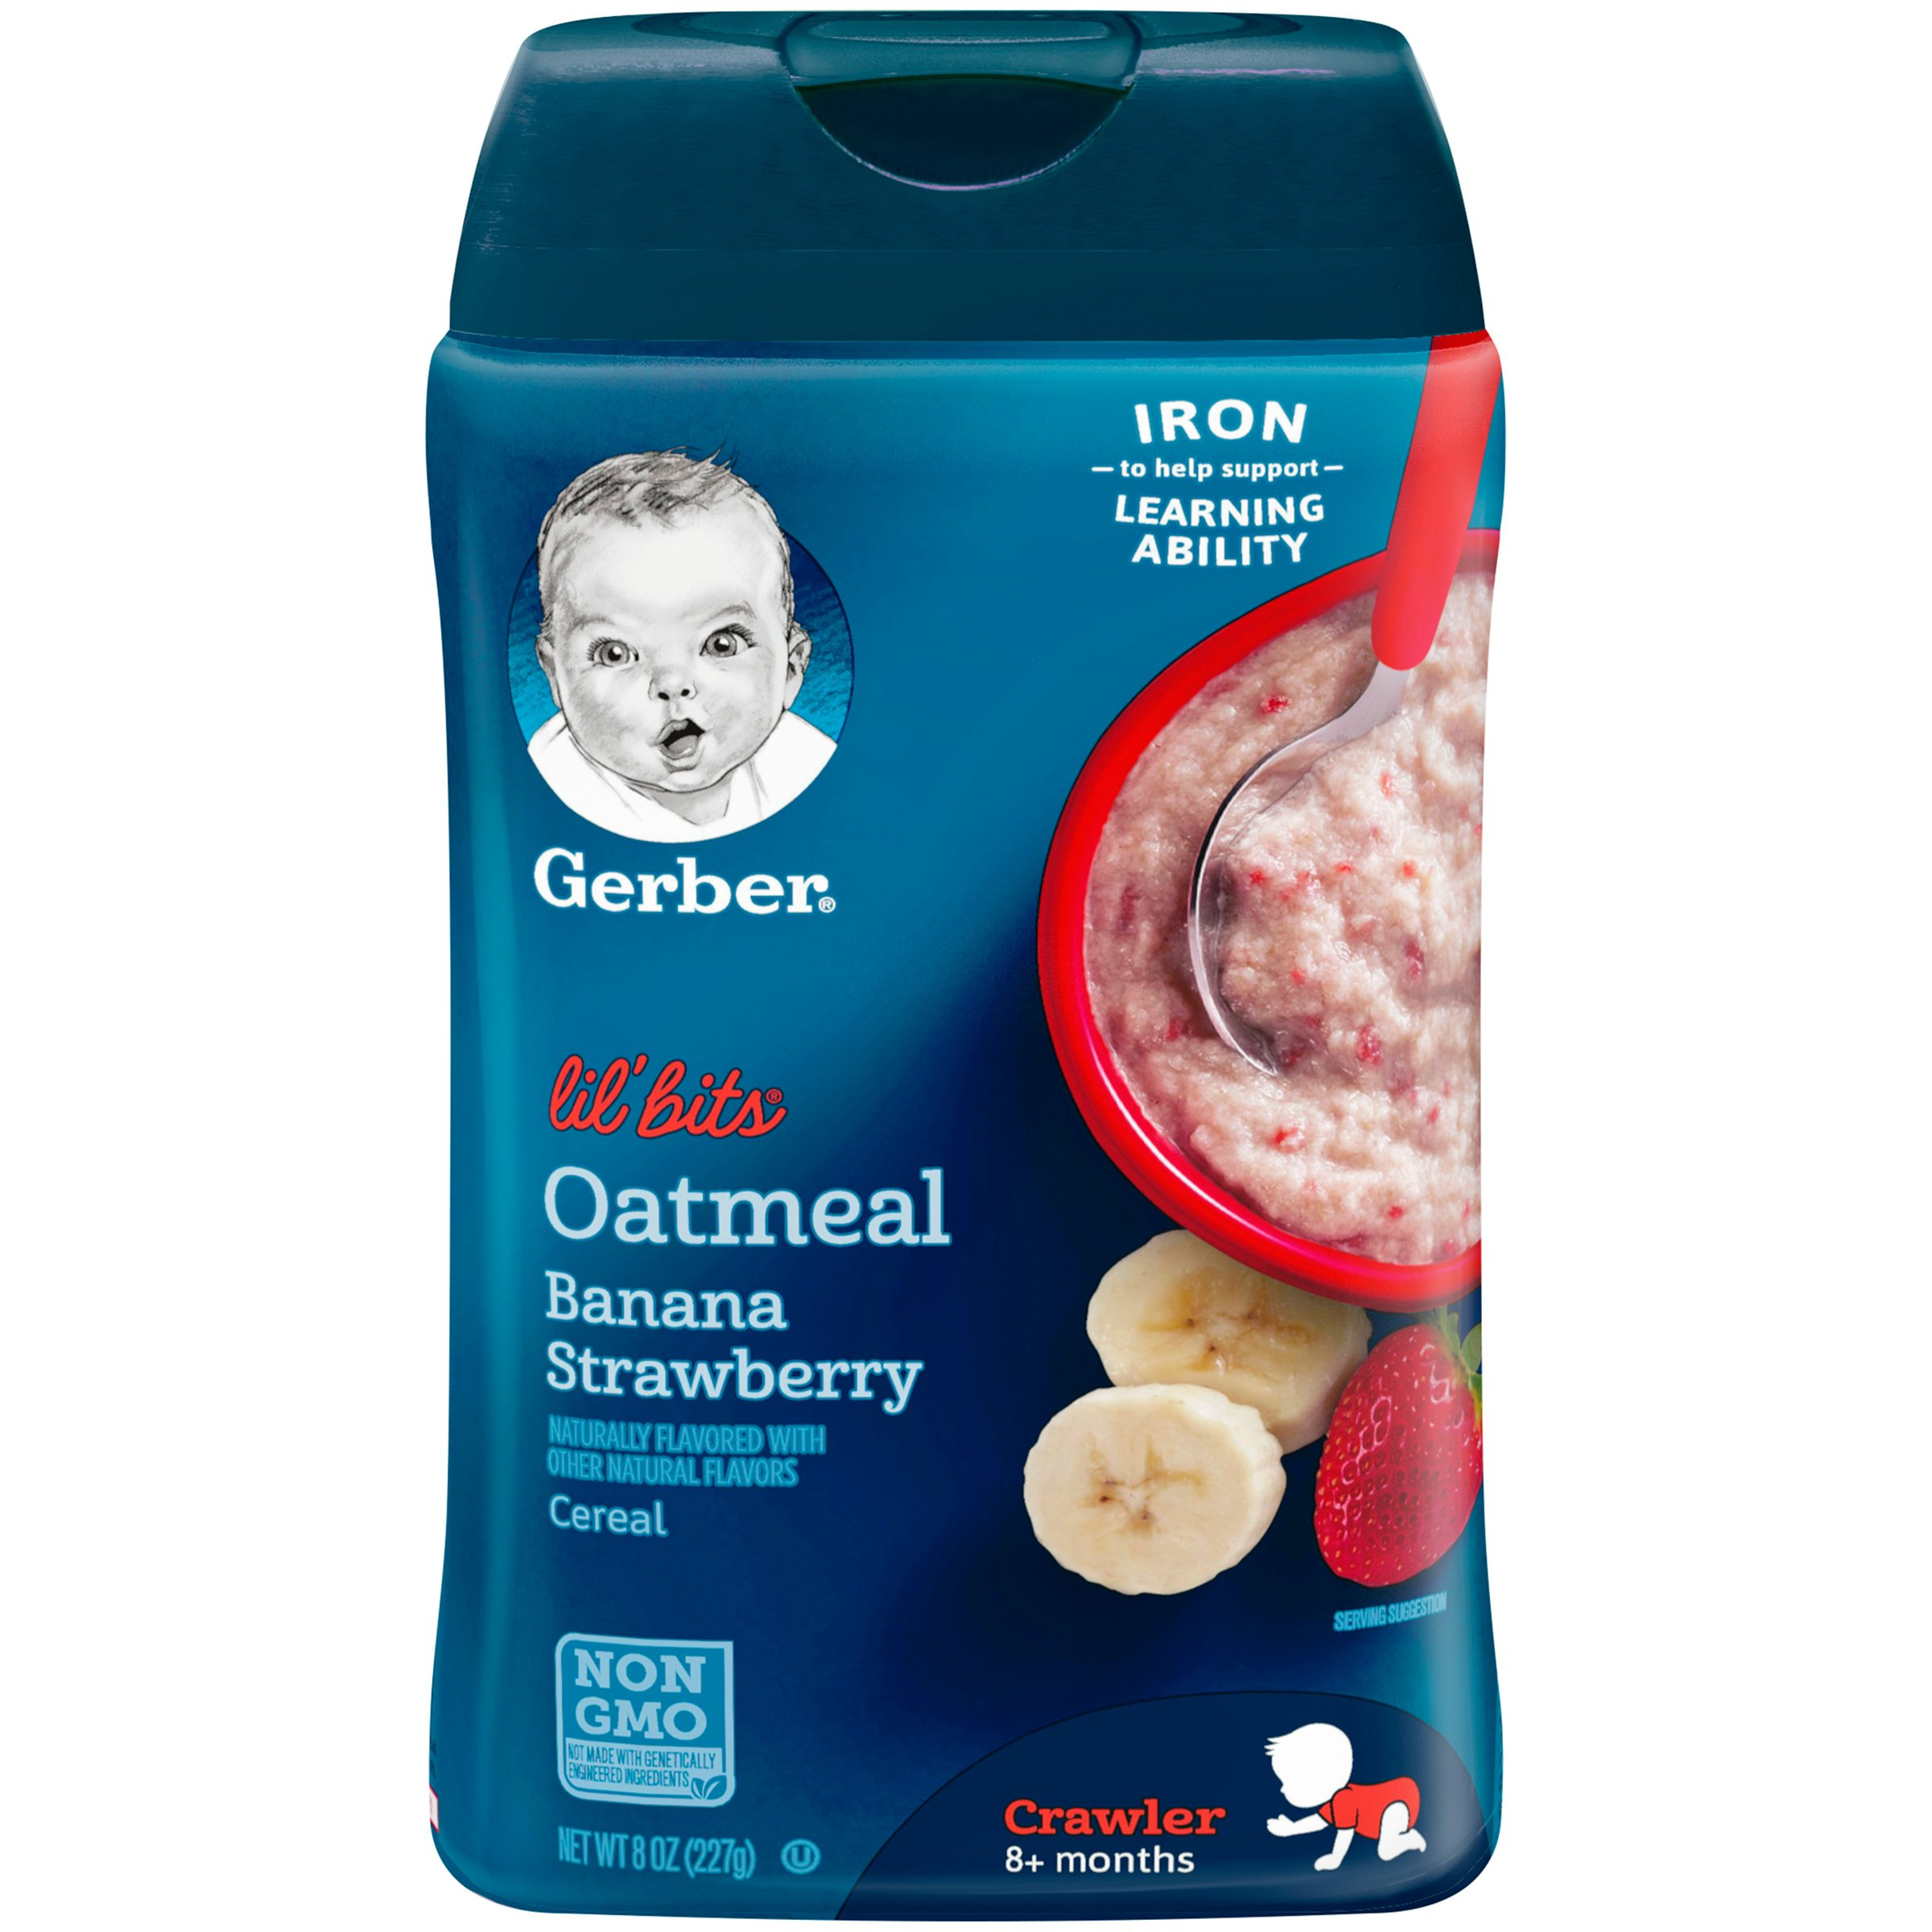 Gerber Lil' Bits Oatmeal Banana Strawberry Baby Cereal, 8 Ounces (Pack of 6) by Gerber